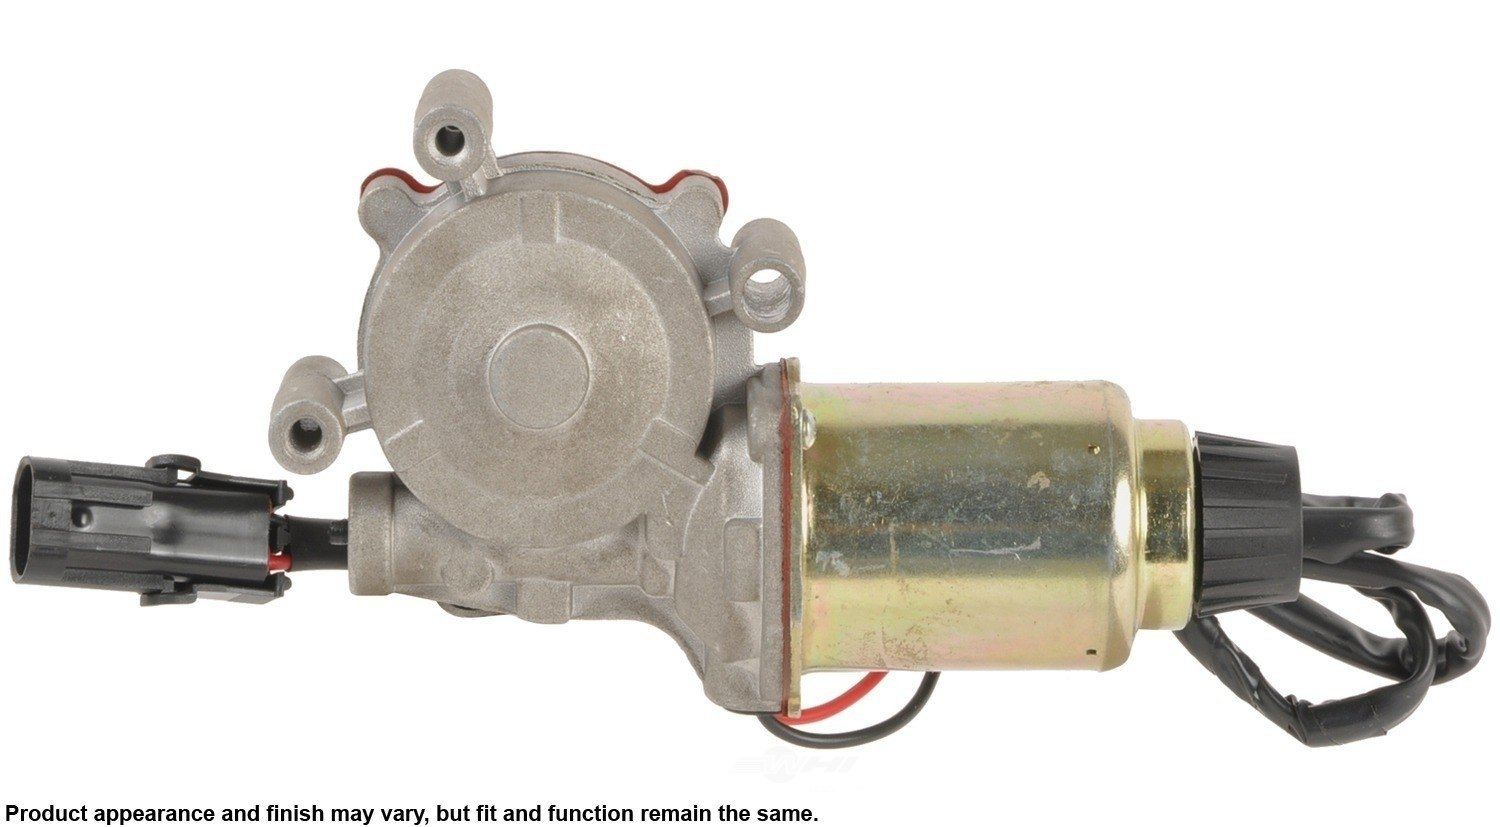 CARDONE NEW - Headlight Motor - A1S 82-9113H